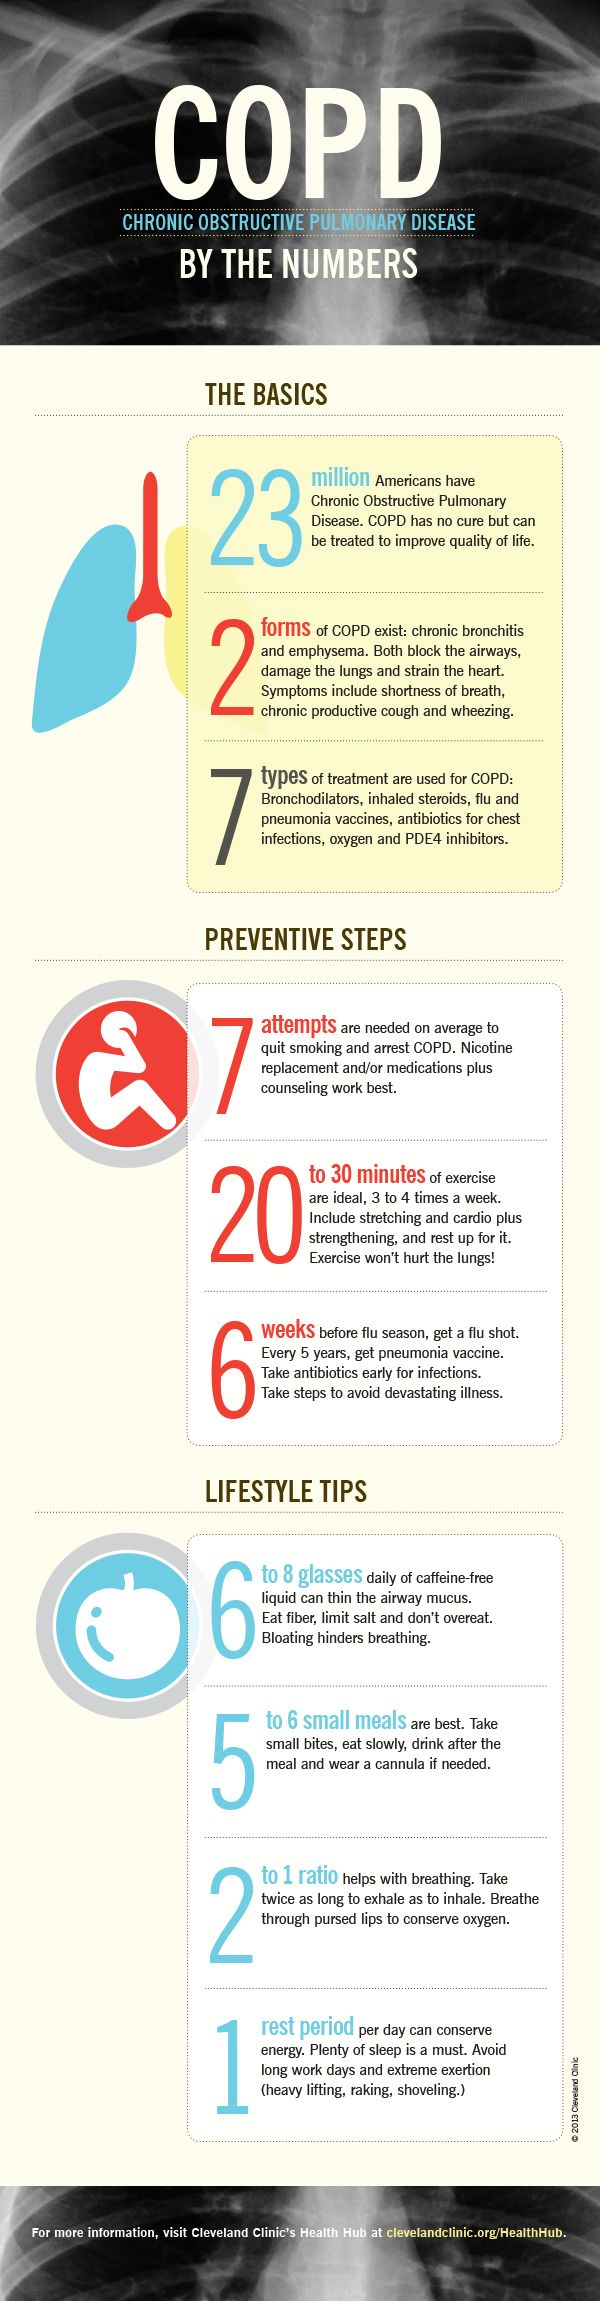 COPD basics. Get 7 prevention and lifestyle tips.